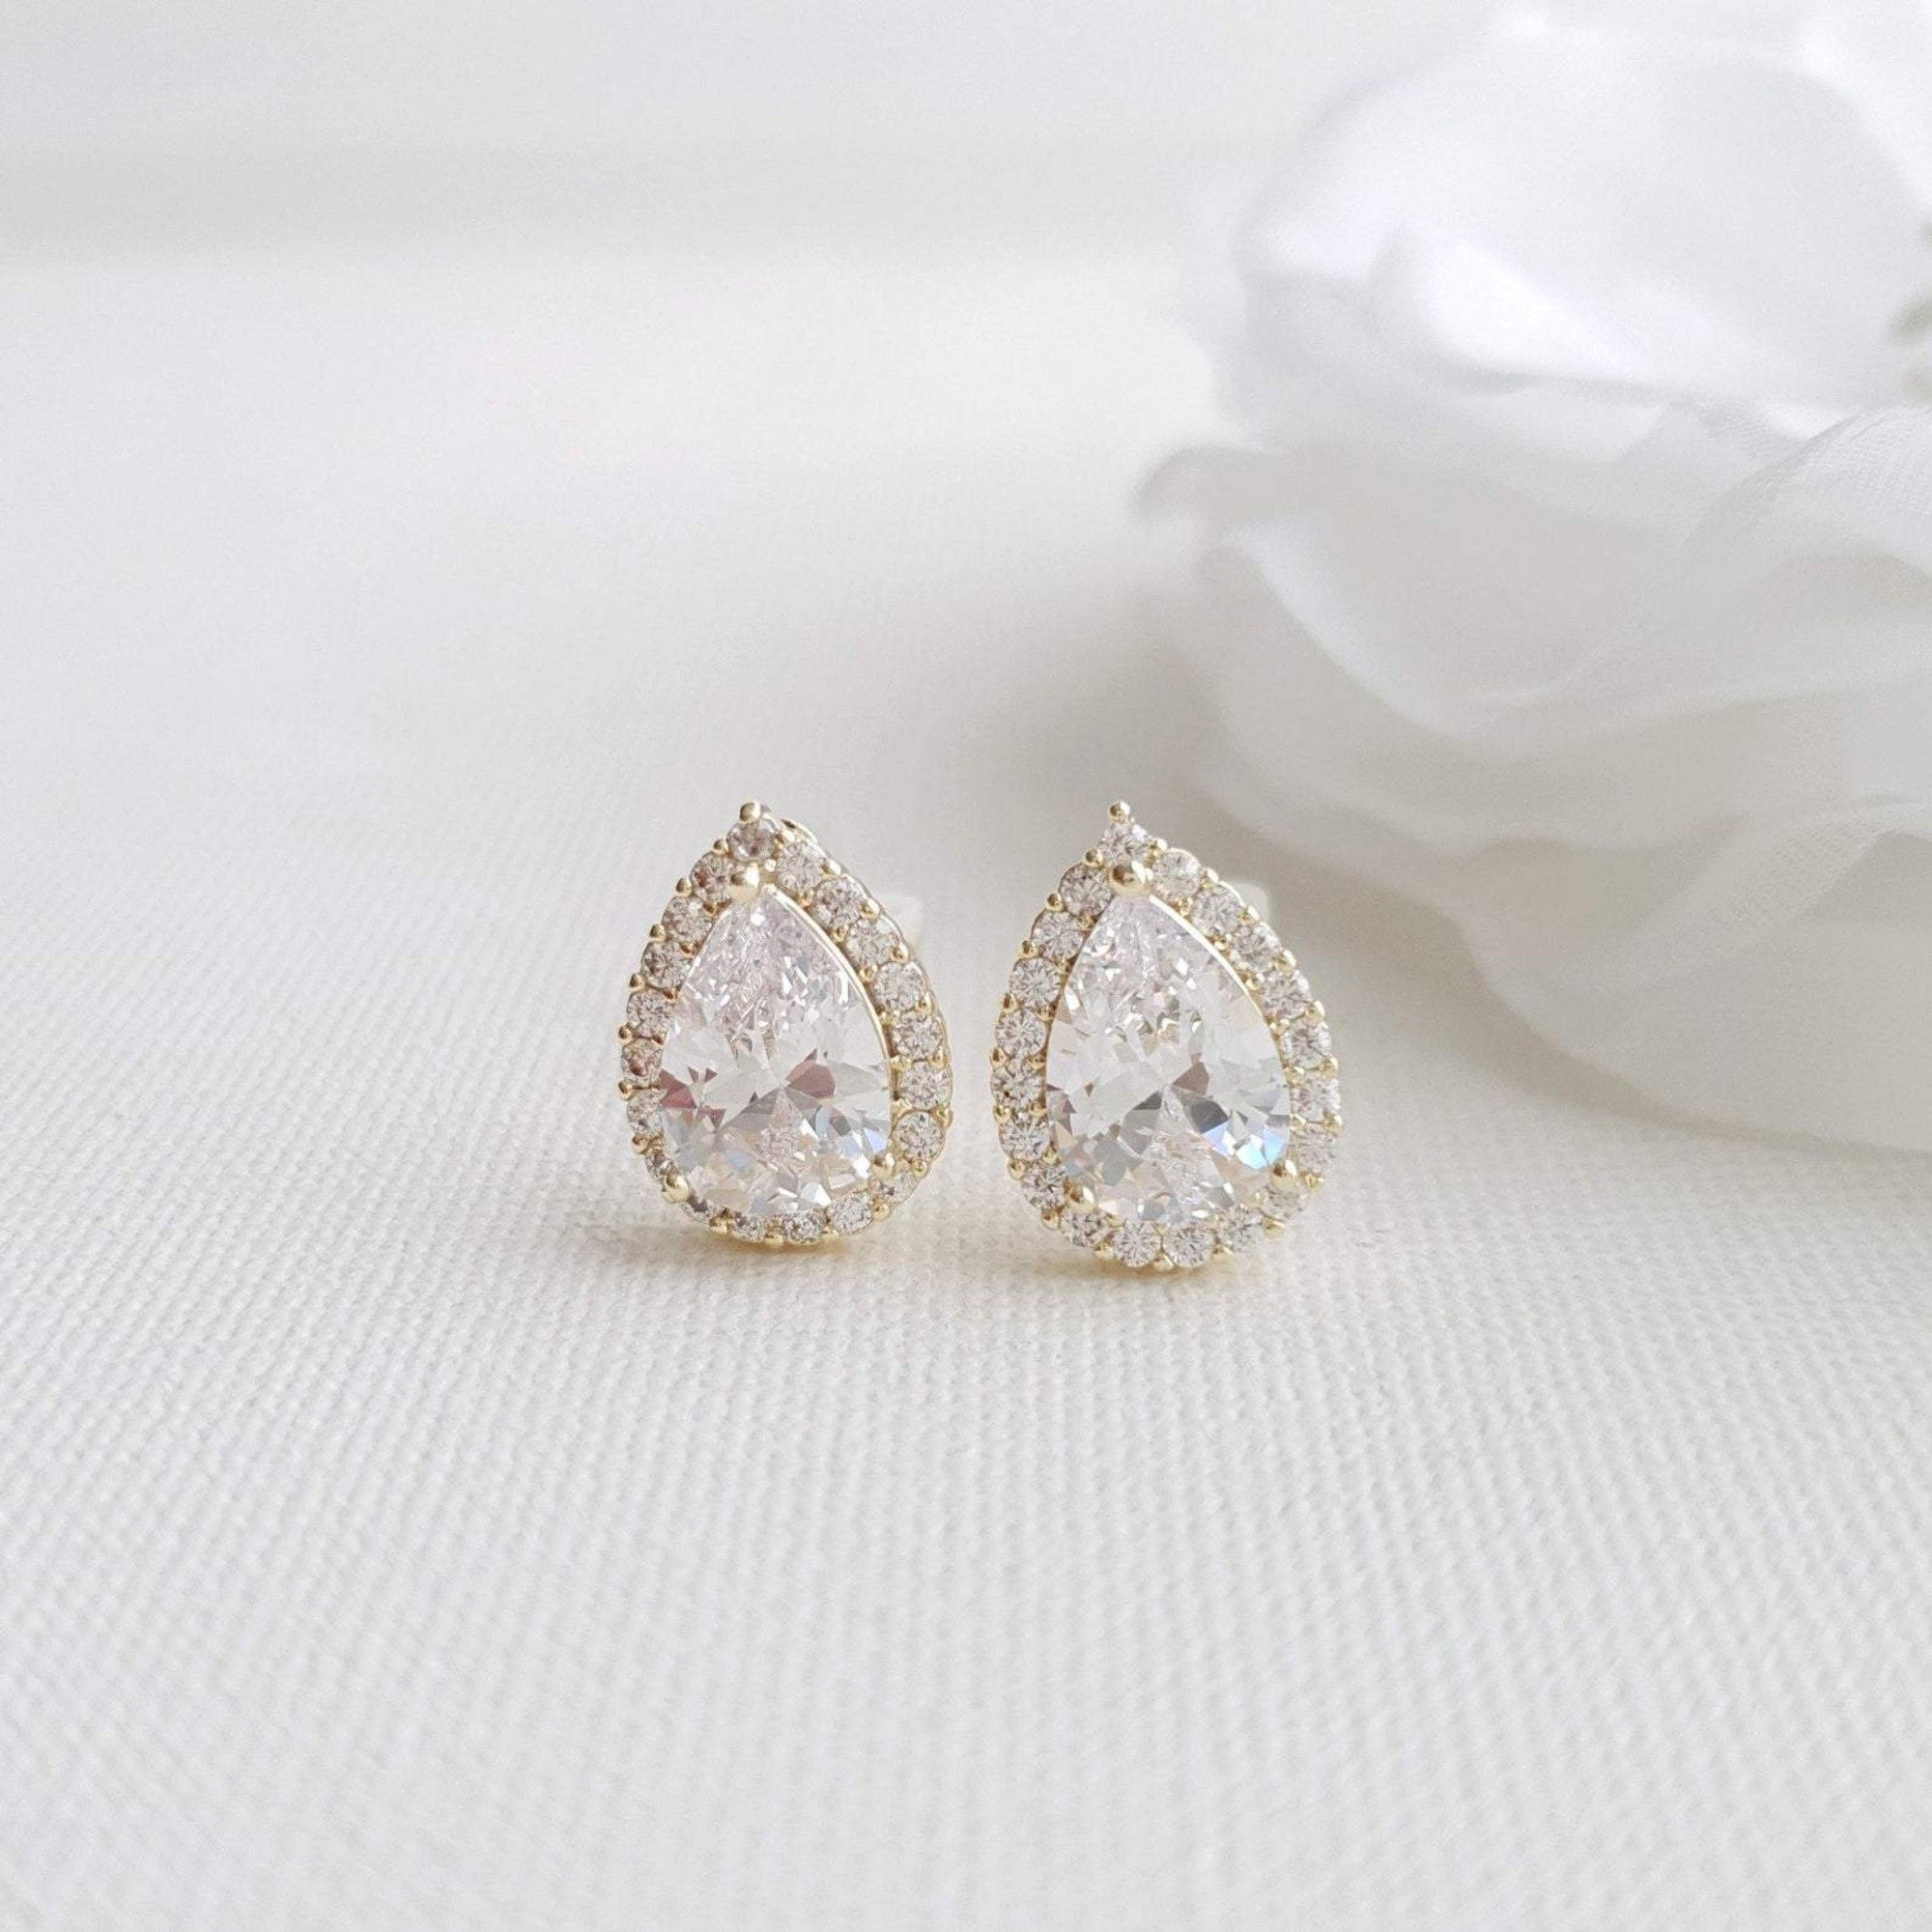 14K gold Teardrop Shaped Clip On stud earrings for Brides and Weddings